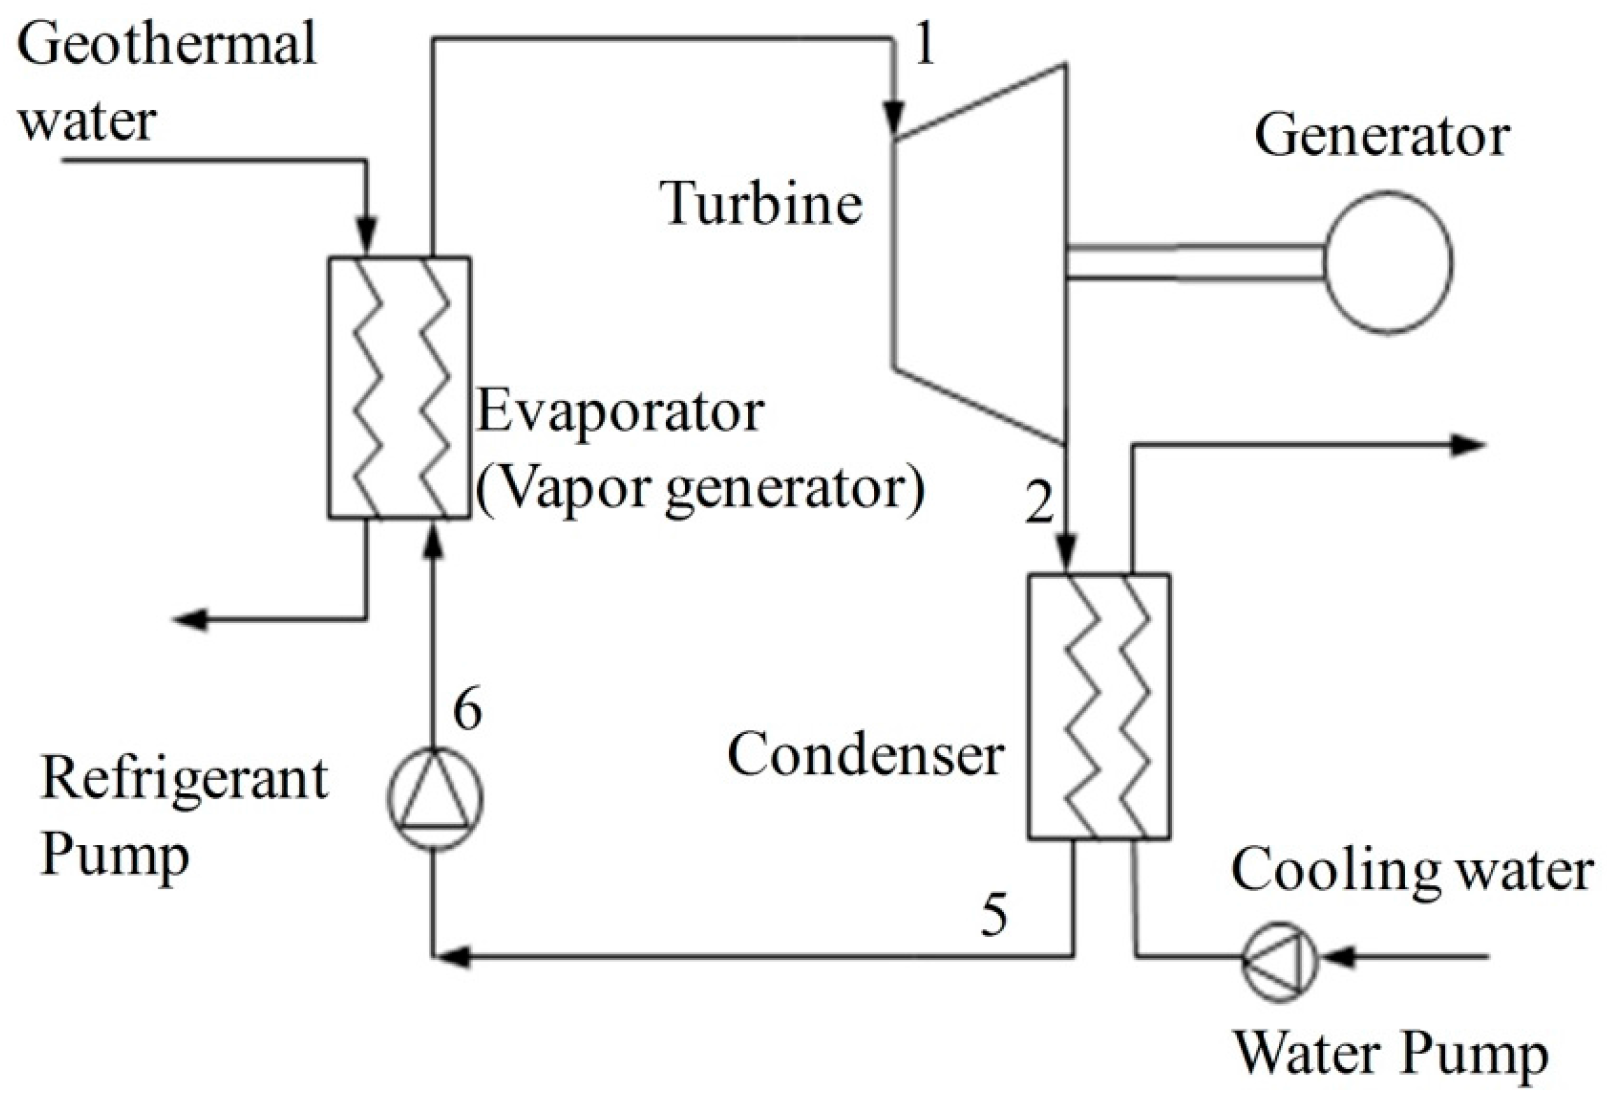 Snap Toshiba Concludes Agreement On Geothermal Power Generation Plant Schematic Diagram Of Rv Wiring